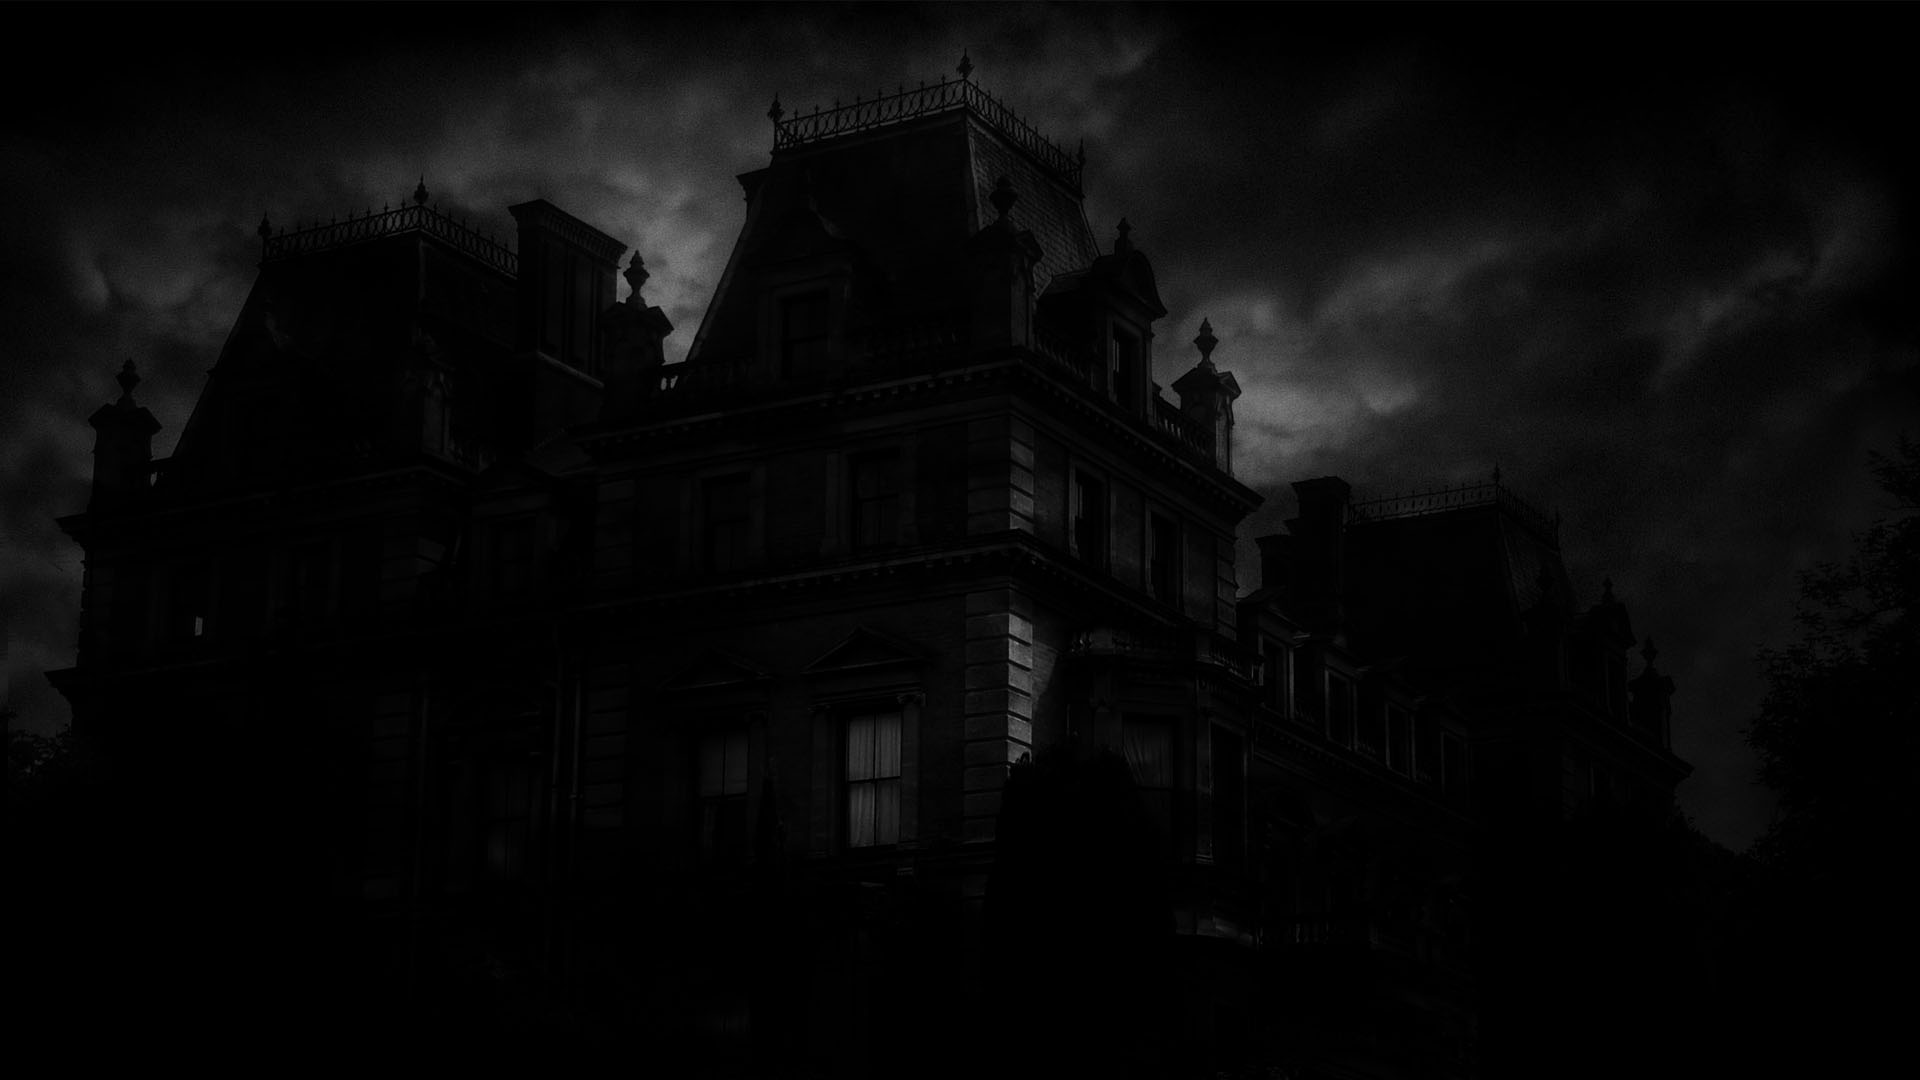 Spooky mansion computer wallpapers desktop backgrounds 1920x1080